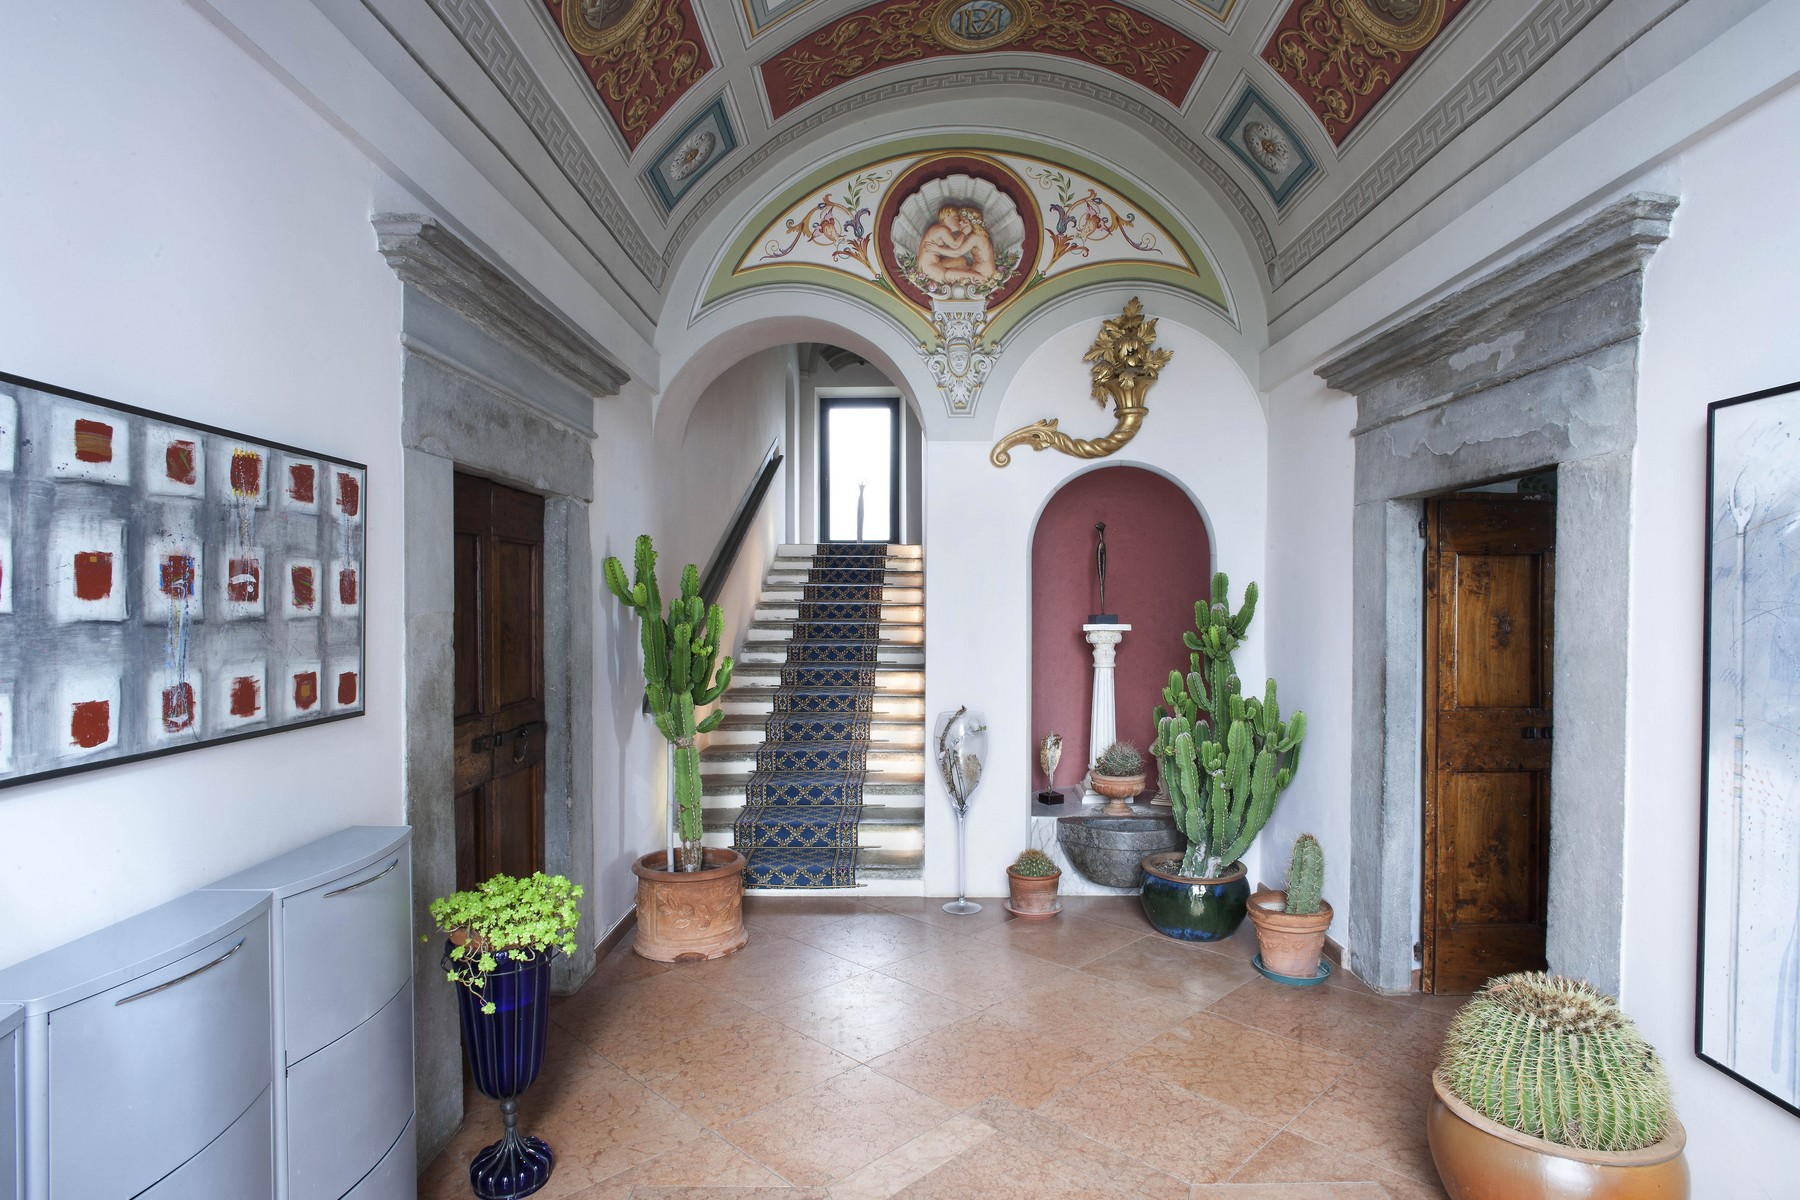 Additional photo for property listing at Exclusive villa in umbrian countryside Voc. Coppi Citta Di Castello, Perugia 06012 Italy